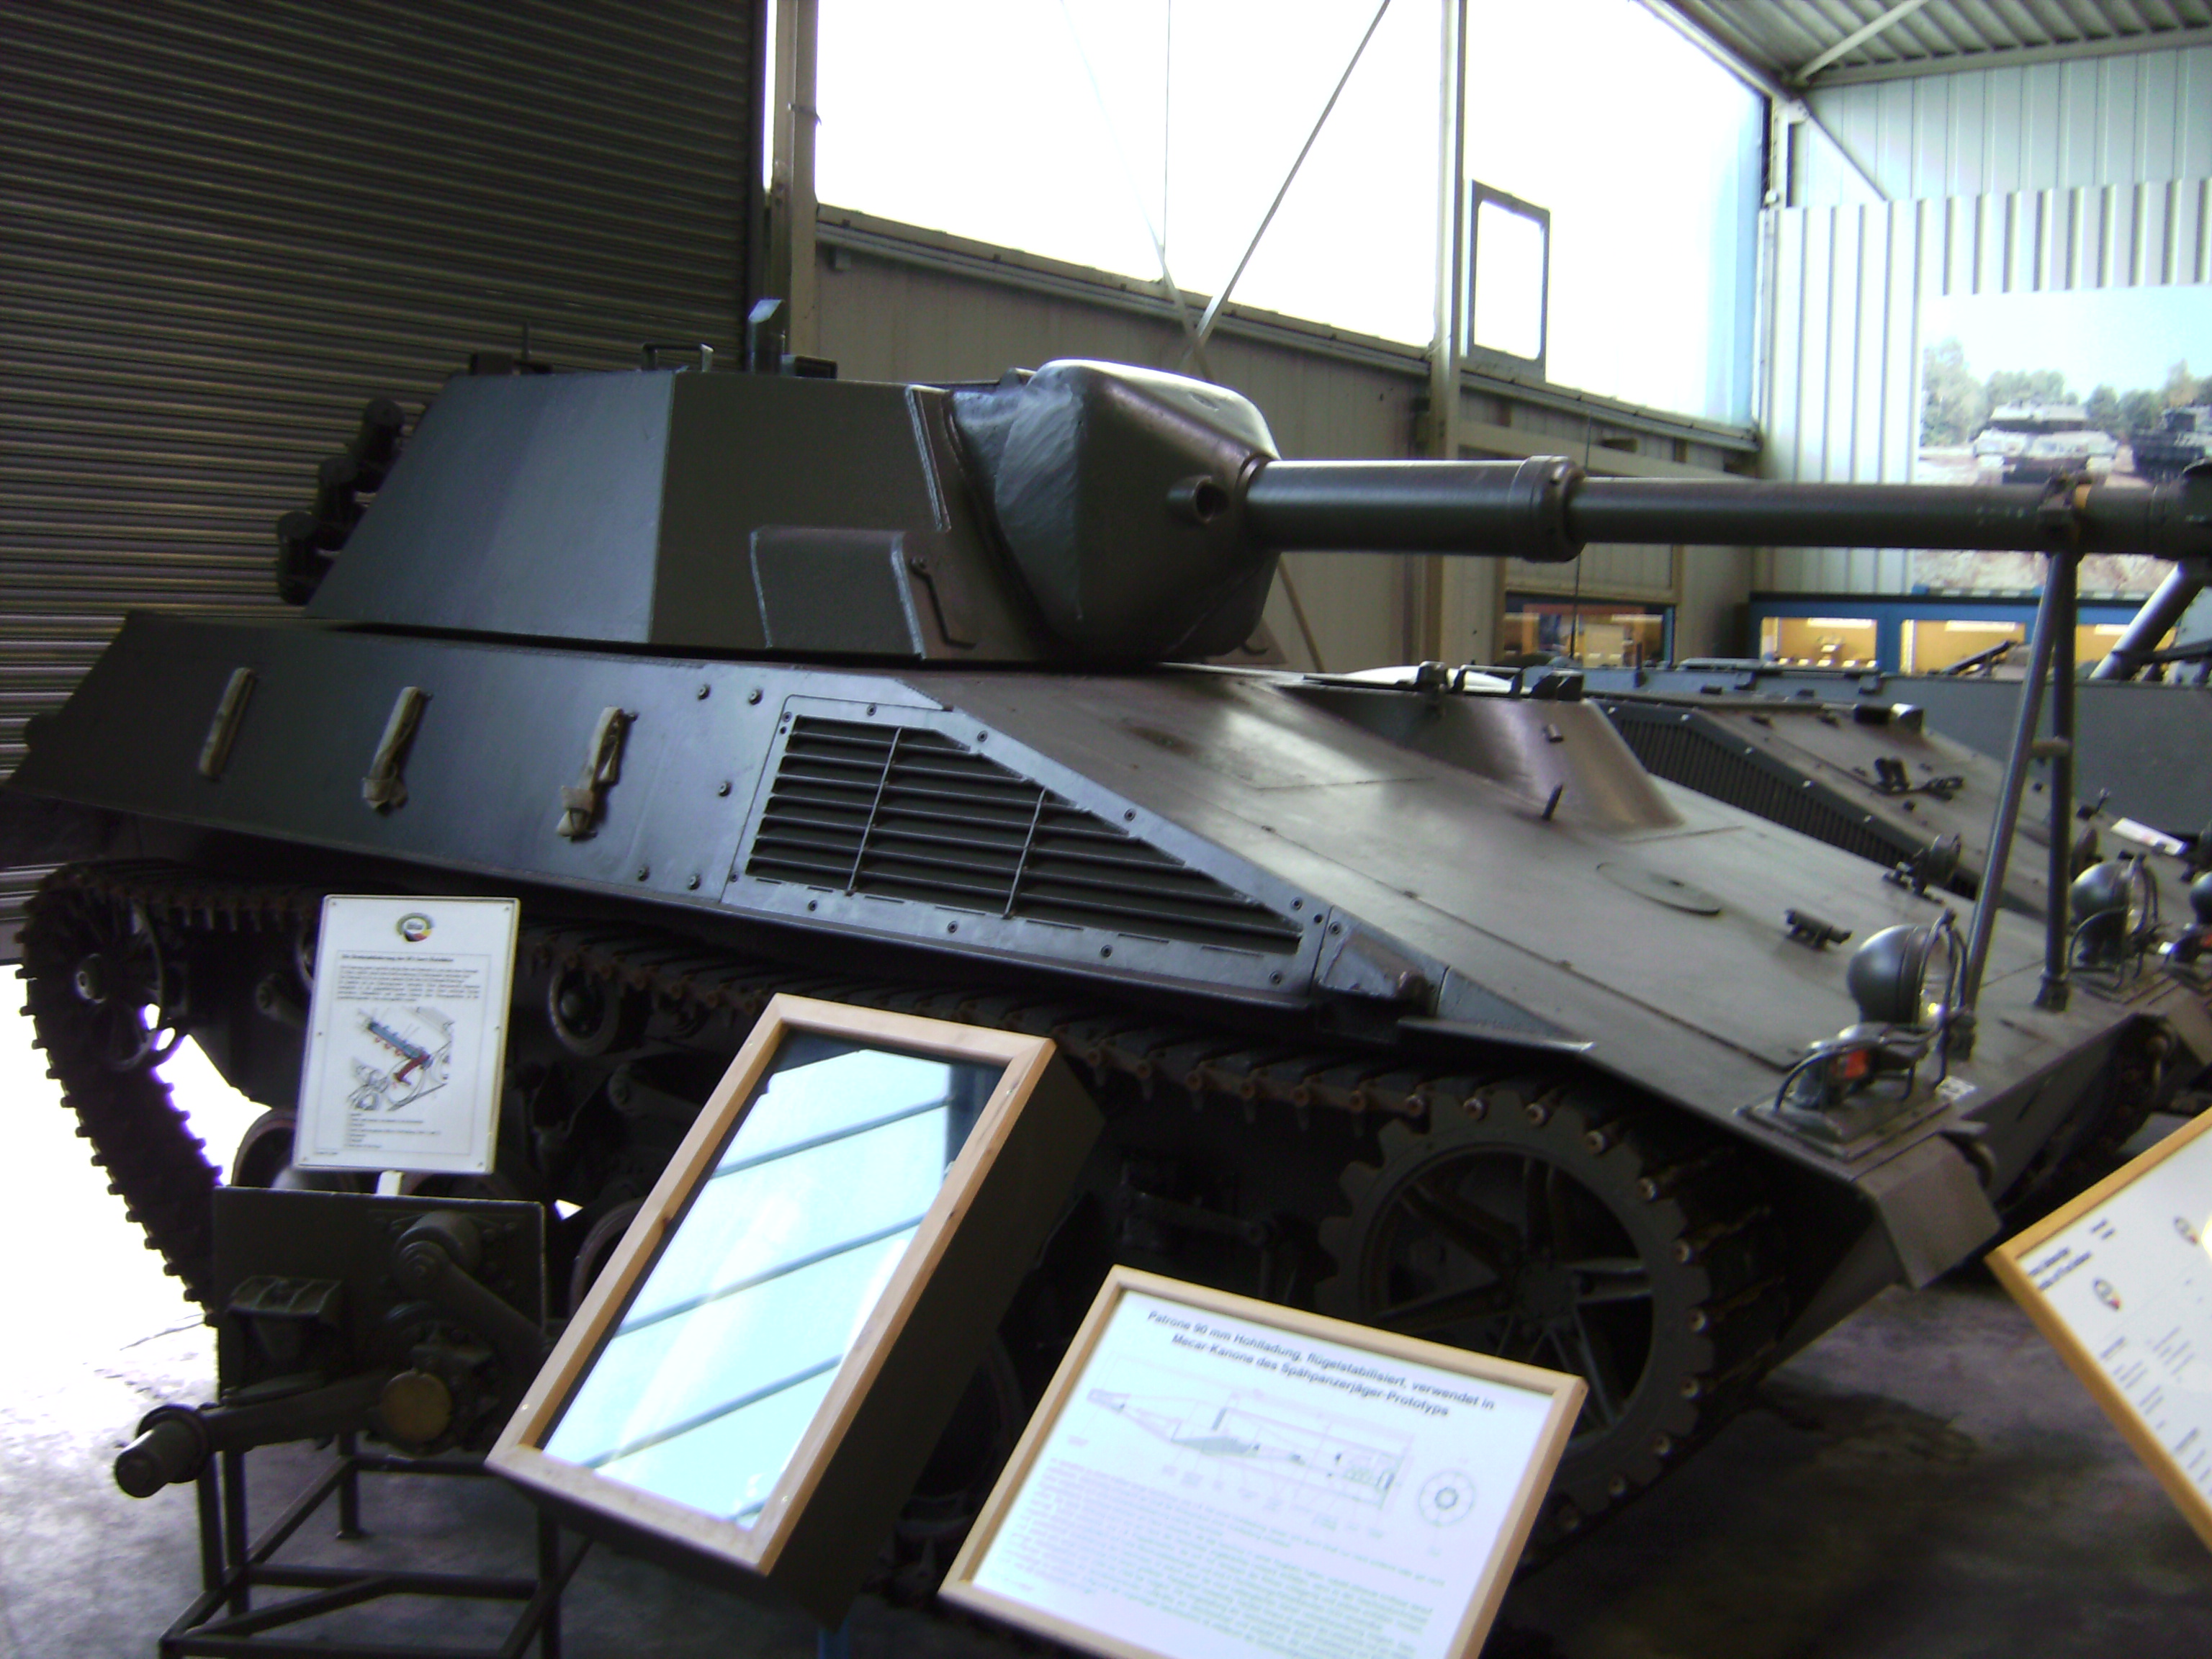 Grille 15 (Tank Destroyer, Germany)